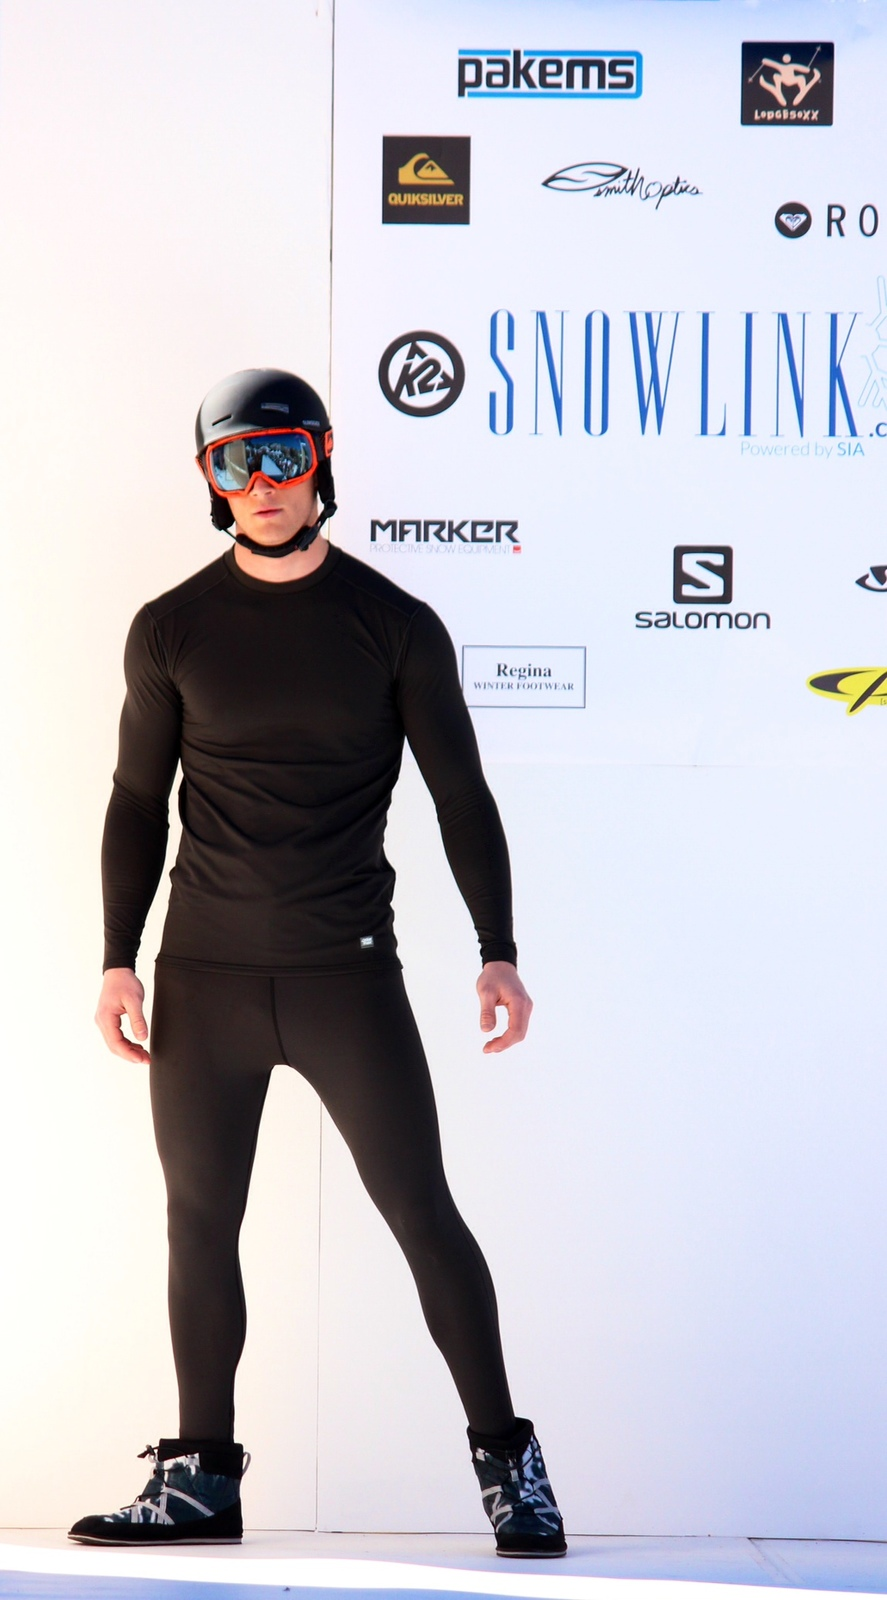 Check out Pakems featured in Aspen Fashion Week! #Pakems #AIFW